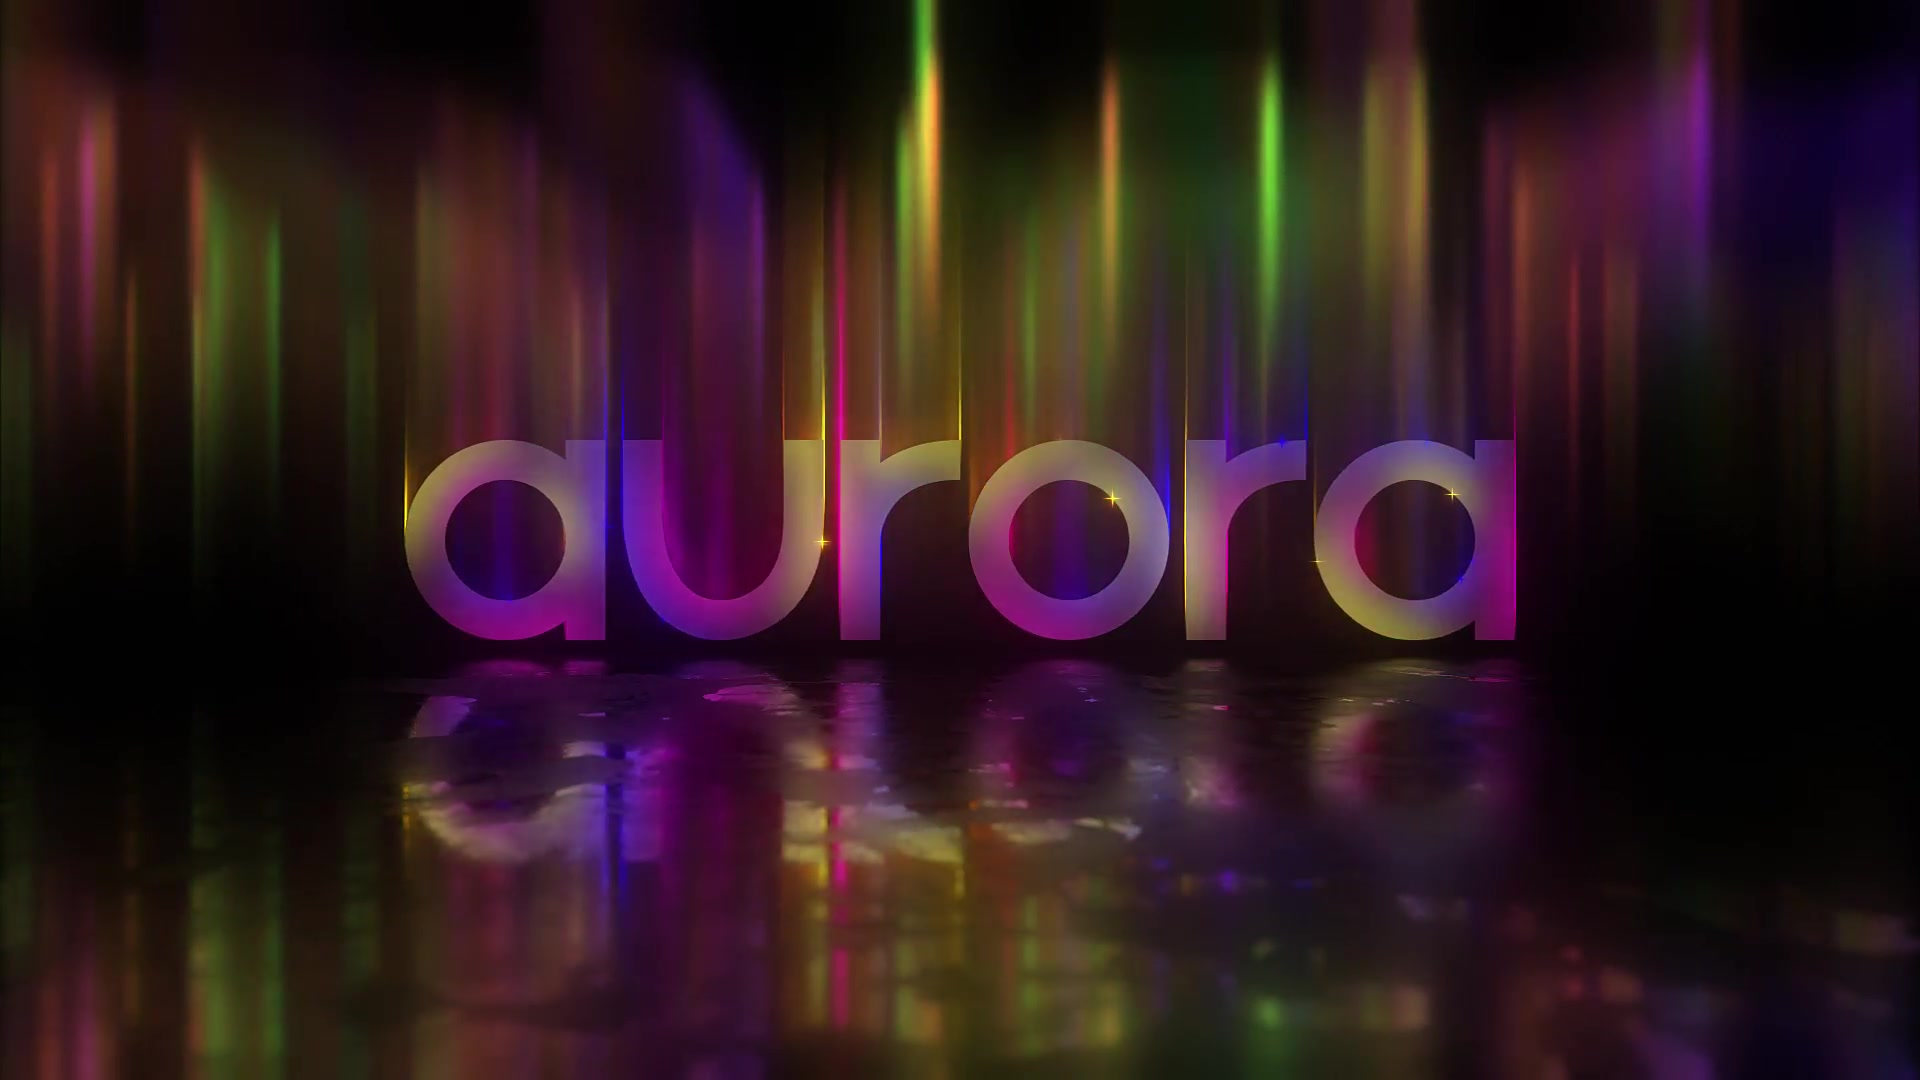 Northern Lights Logo Videohive 25503770 After Effects Image 5